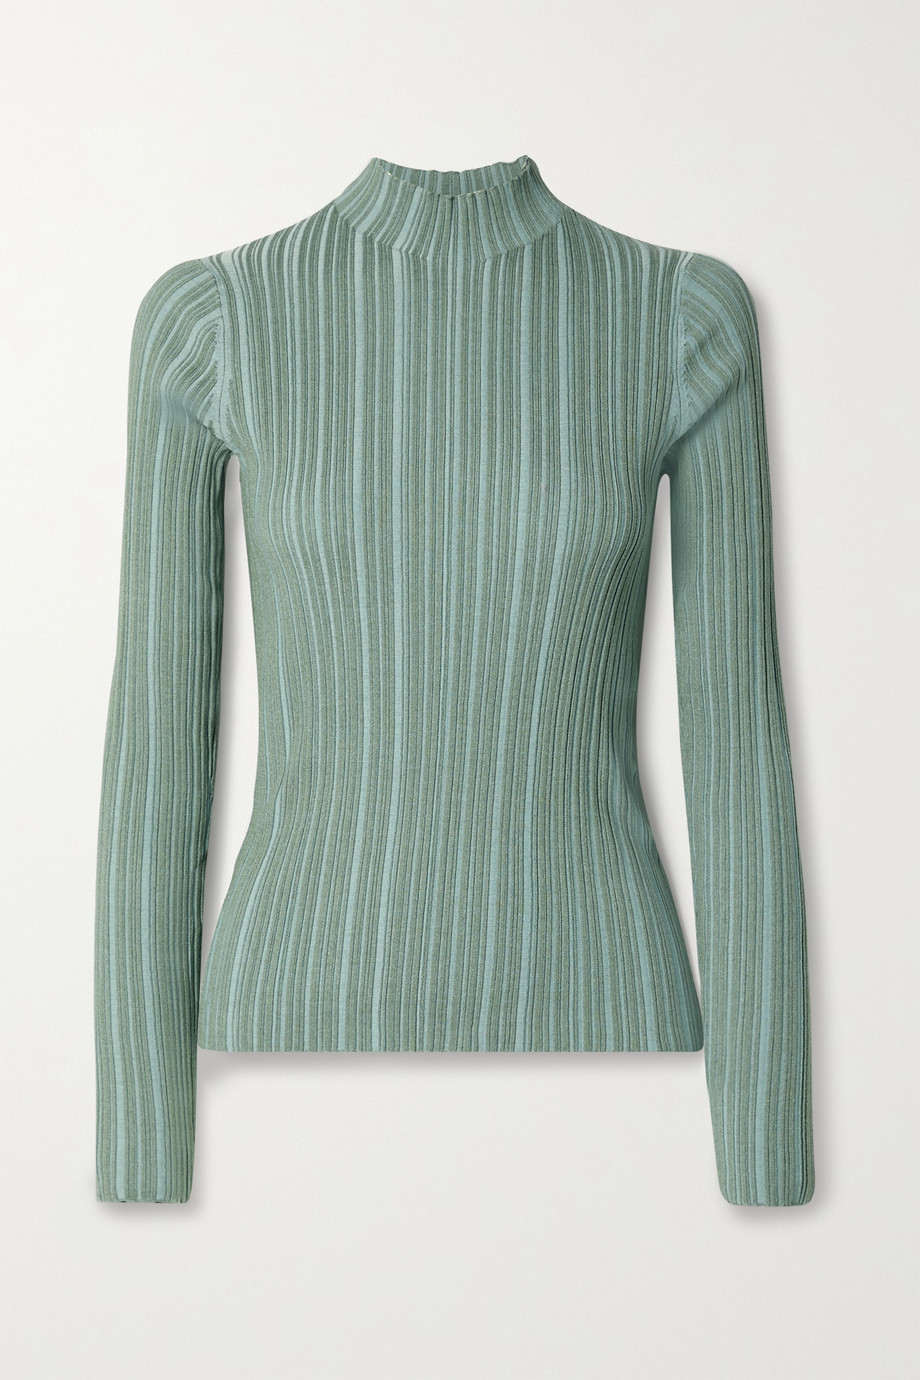 Acne Studios Ribbed cotton-blend turtleneck sweater